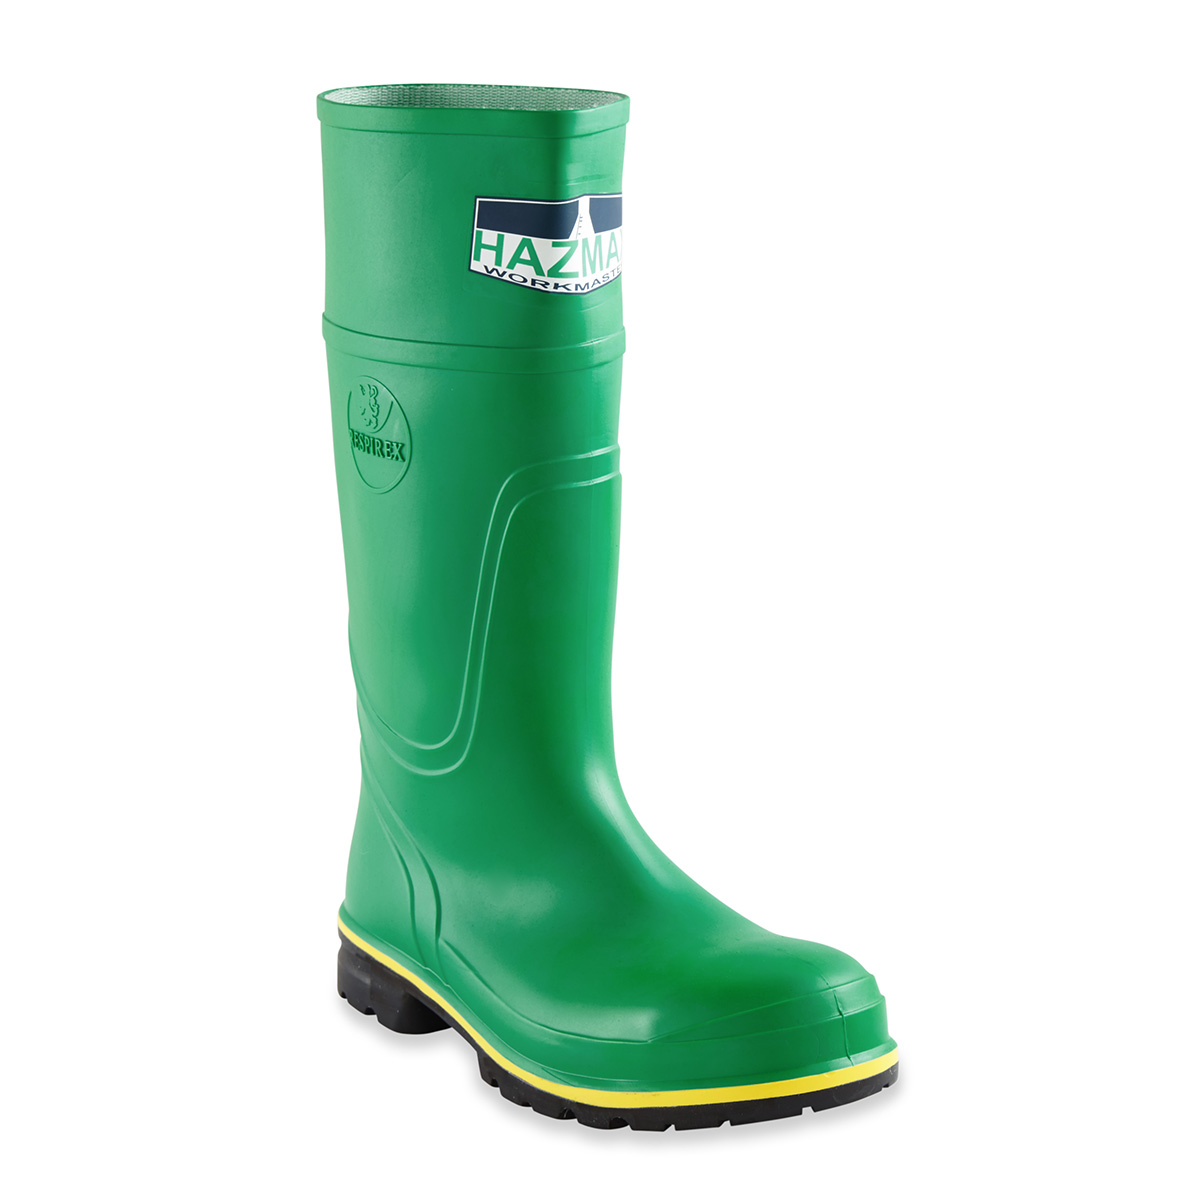 SF4210 _STD_Hazmax_Safety_Wellington_Boots